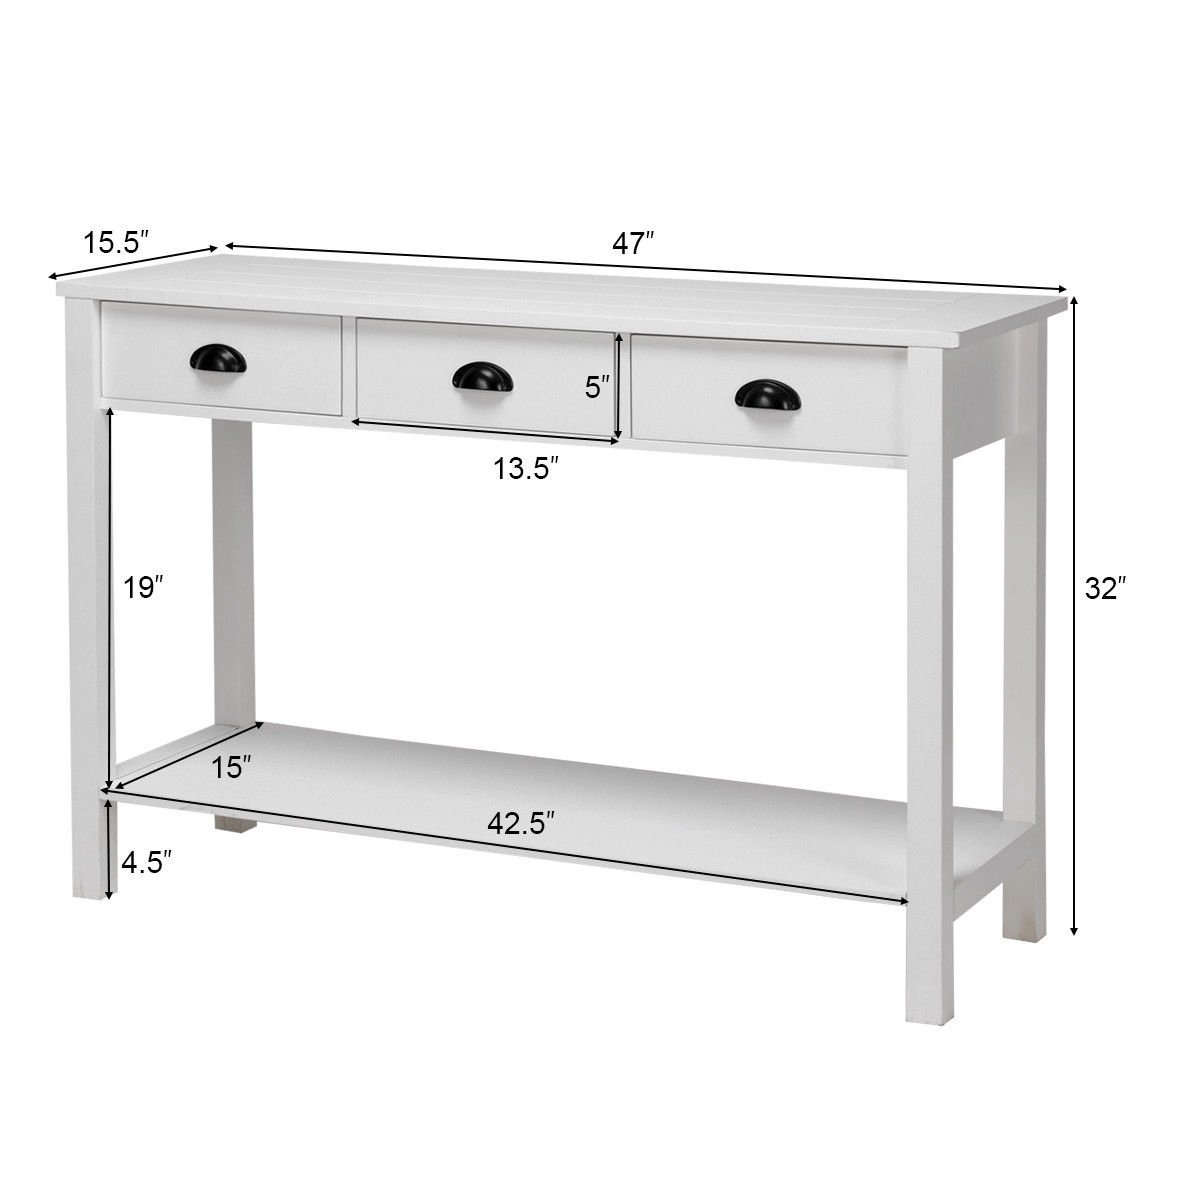 way console table hall side desk accent drawers shelf entryway white with free shipping today tables living room canadian tire patio definition large marble decor coffee toronto